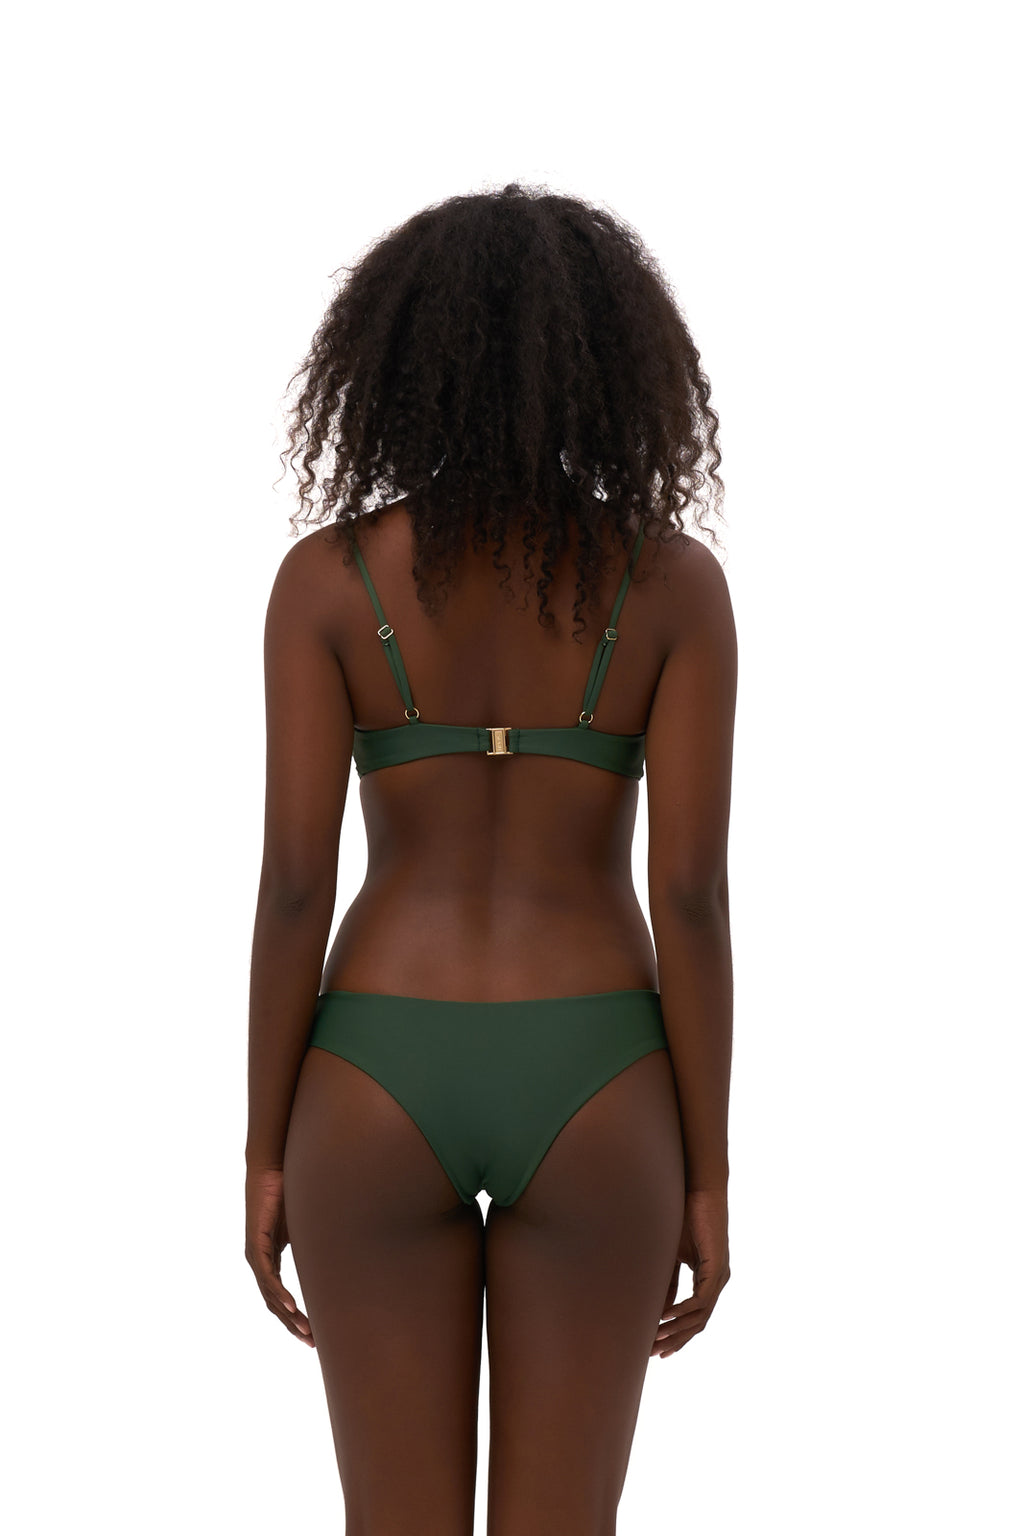 Storm Swimwear - St Barts - Bottom in Plain Bamboo